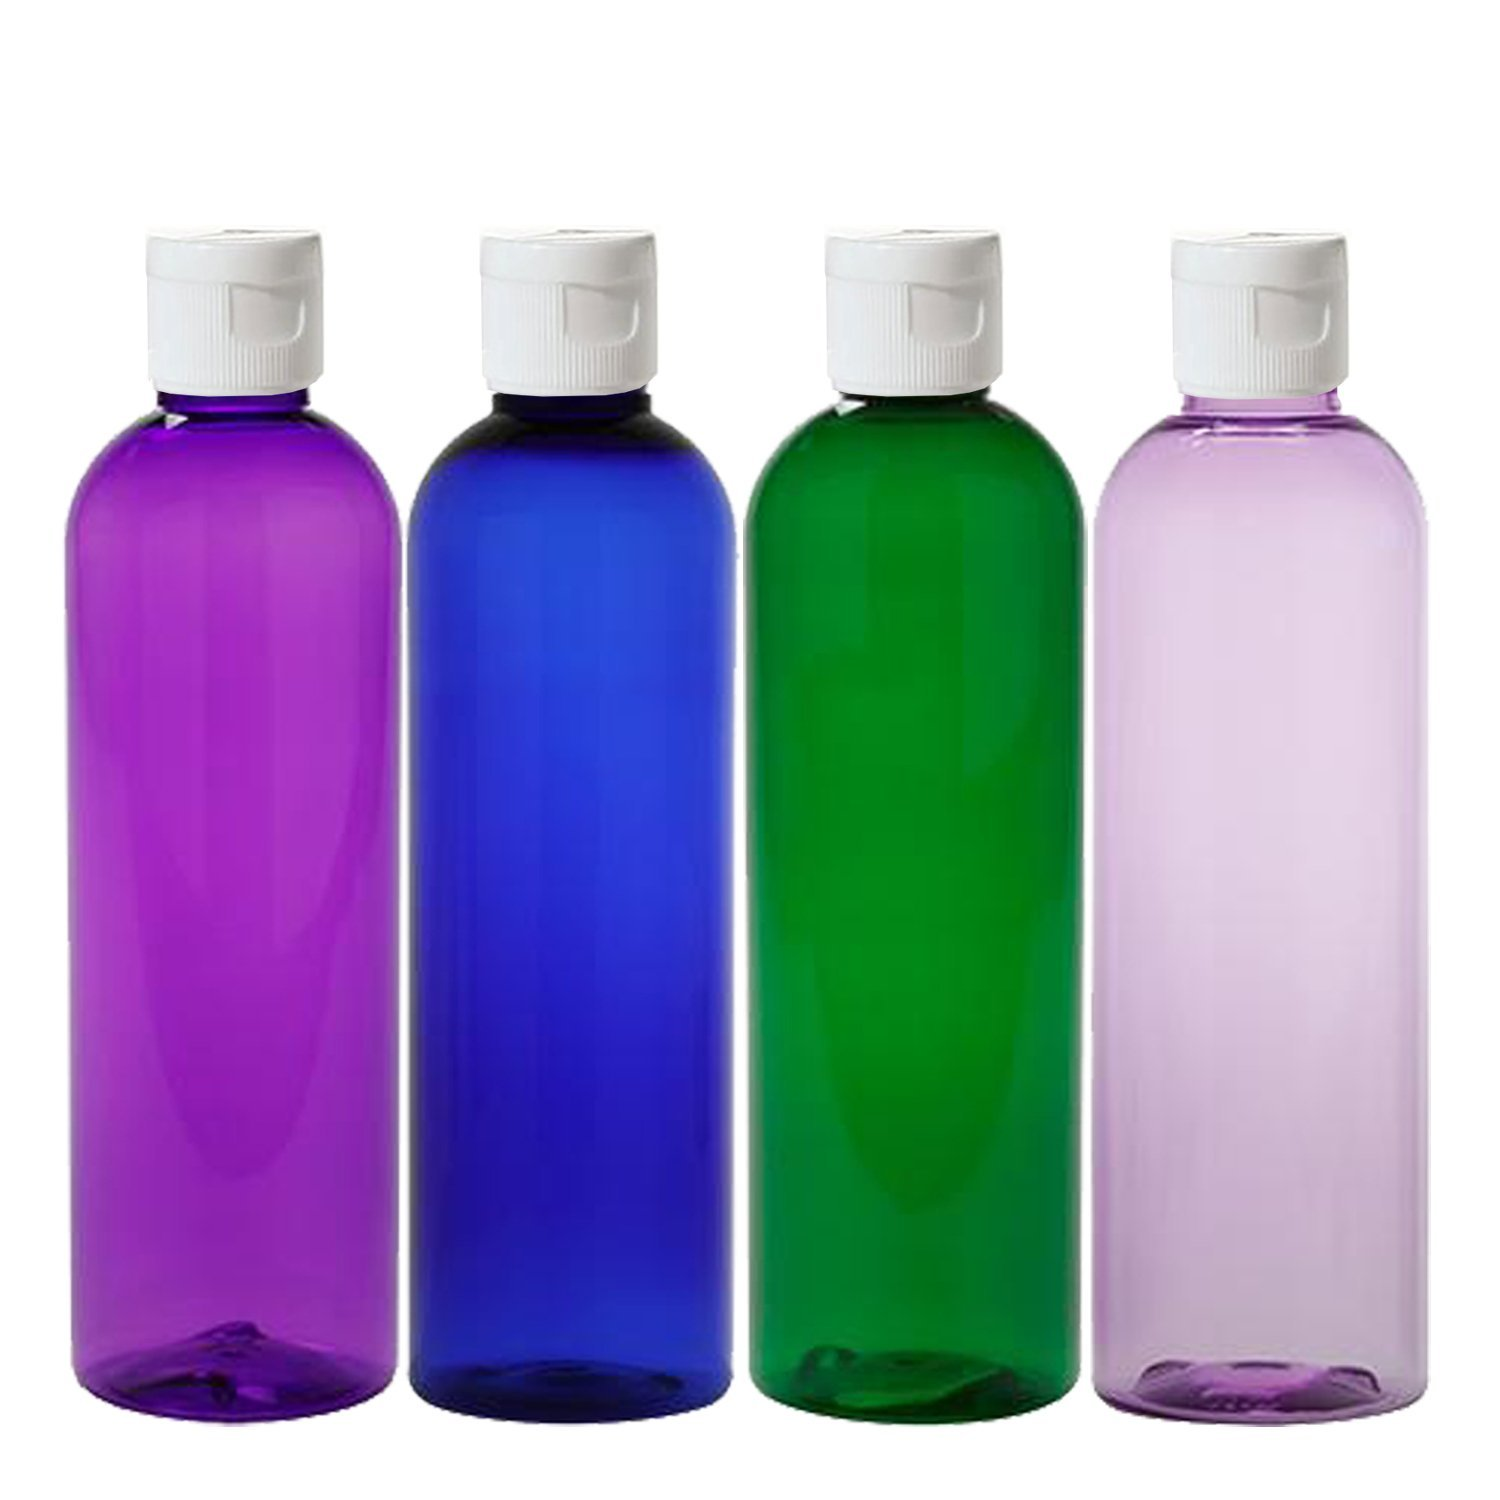 MoYo Natural Labs 4 oz Travel Bottles, Empty Travel Containers with Flip Caps, BPA Free PET Plastic Squeezable Toiletry/Cosmetic Bottles (Pack of 4, Psychedelic)